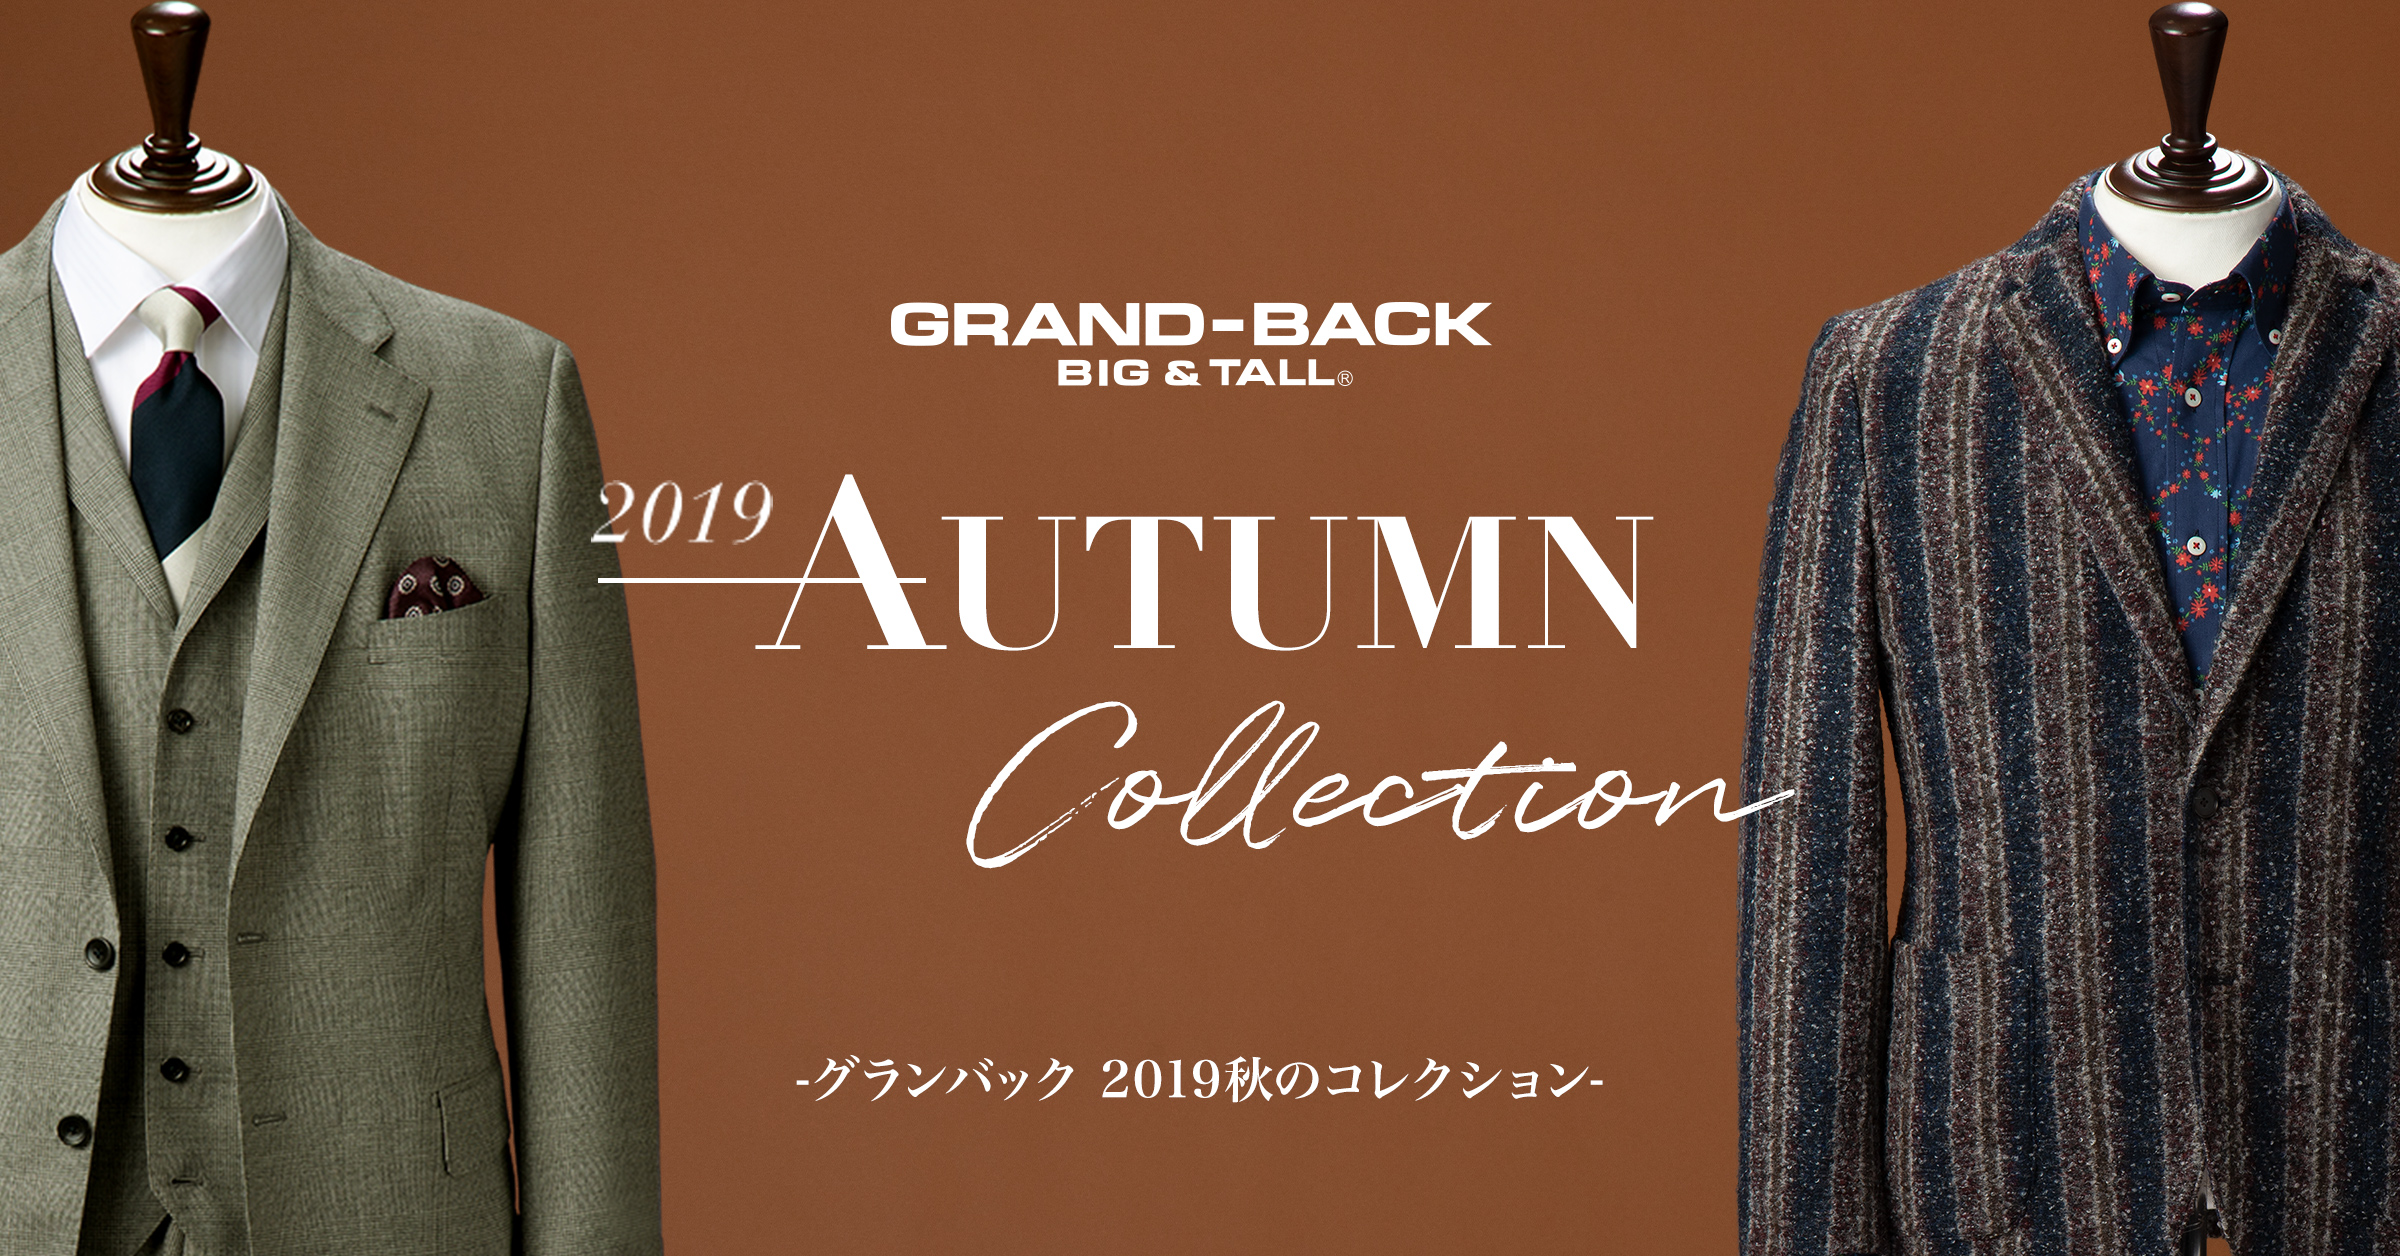 GRAND BACK 2019 AUTUMN COLLECTION